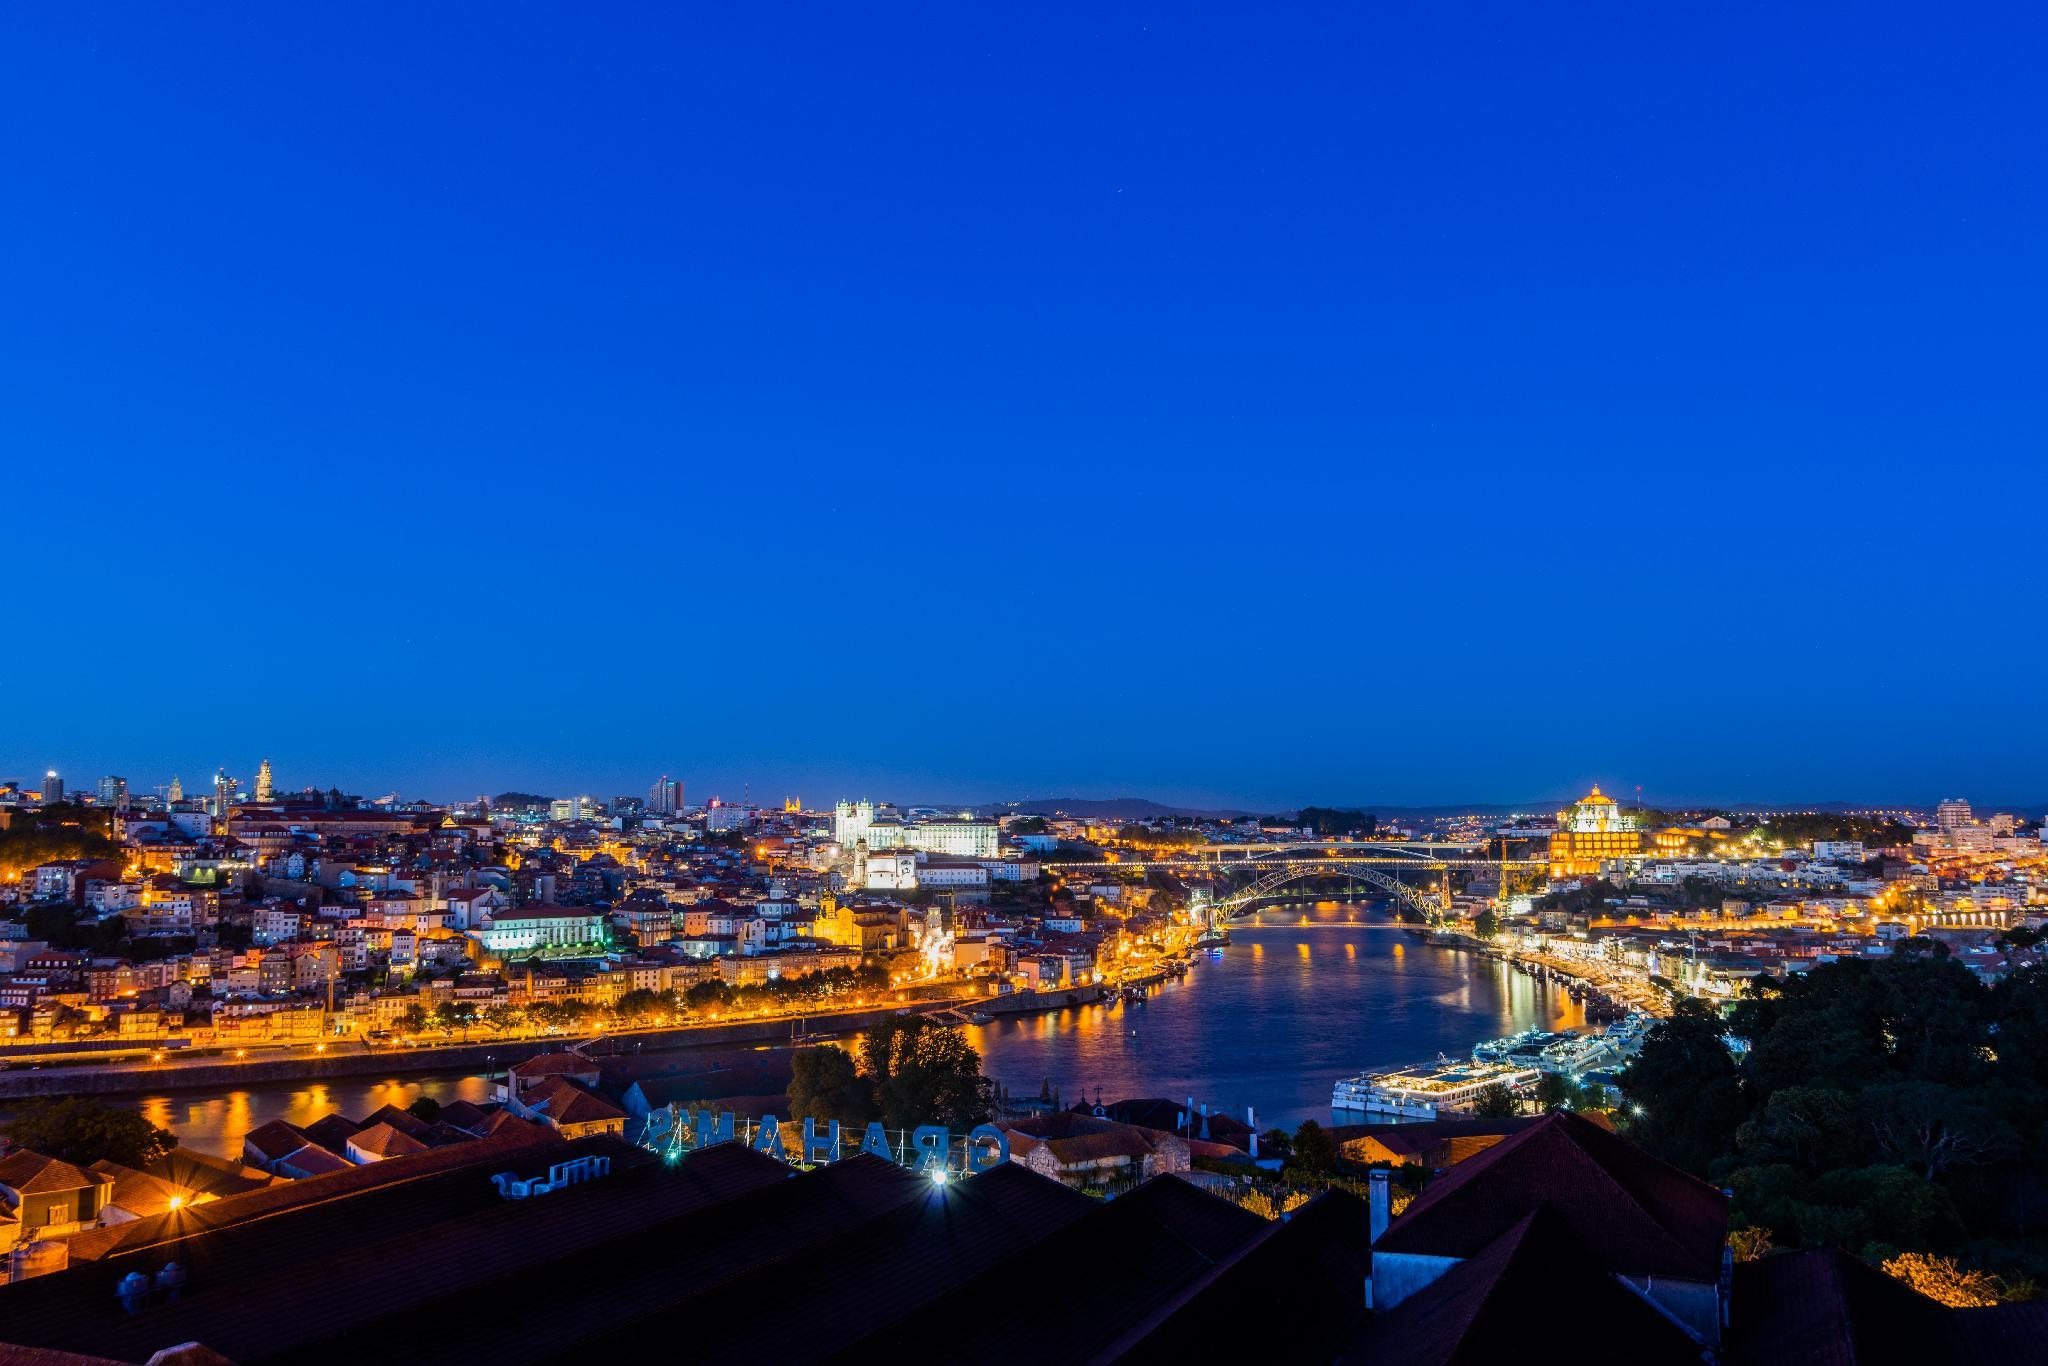 Stunning View Of Douro River And D. Luis I Bridge